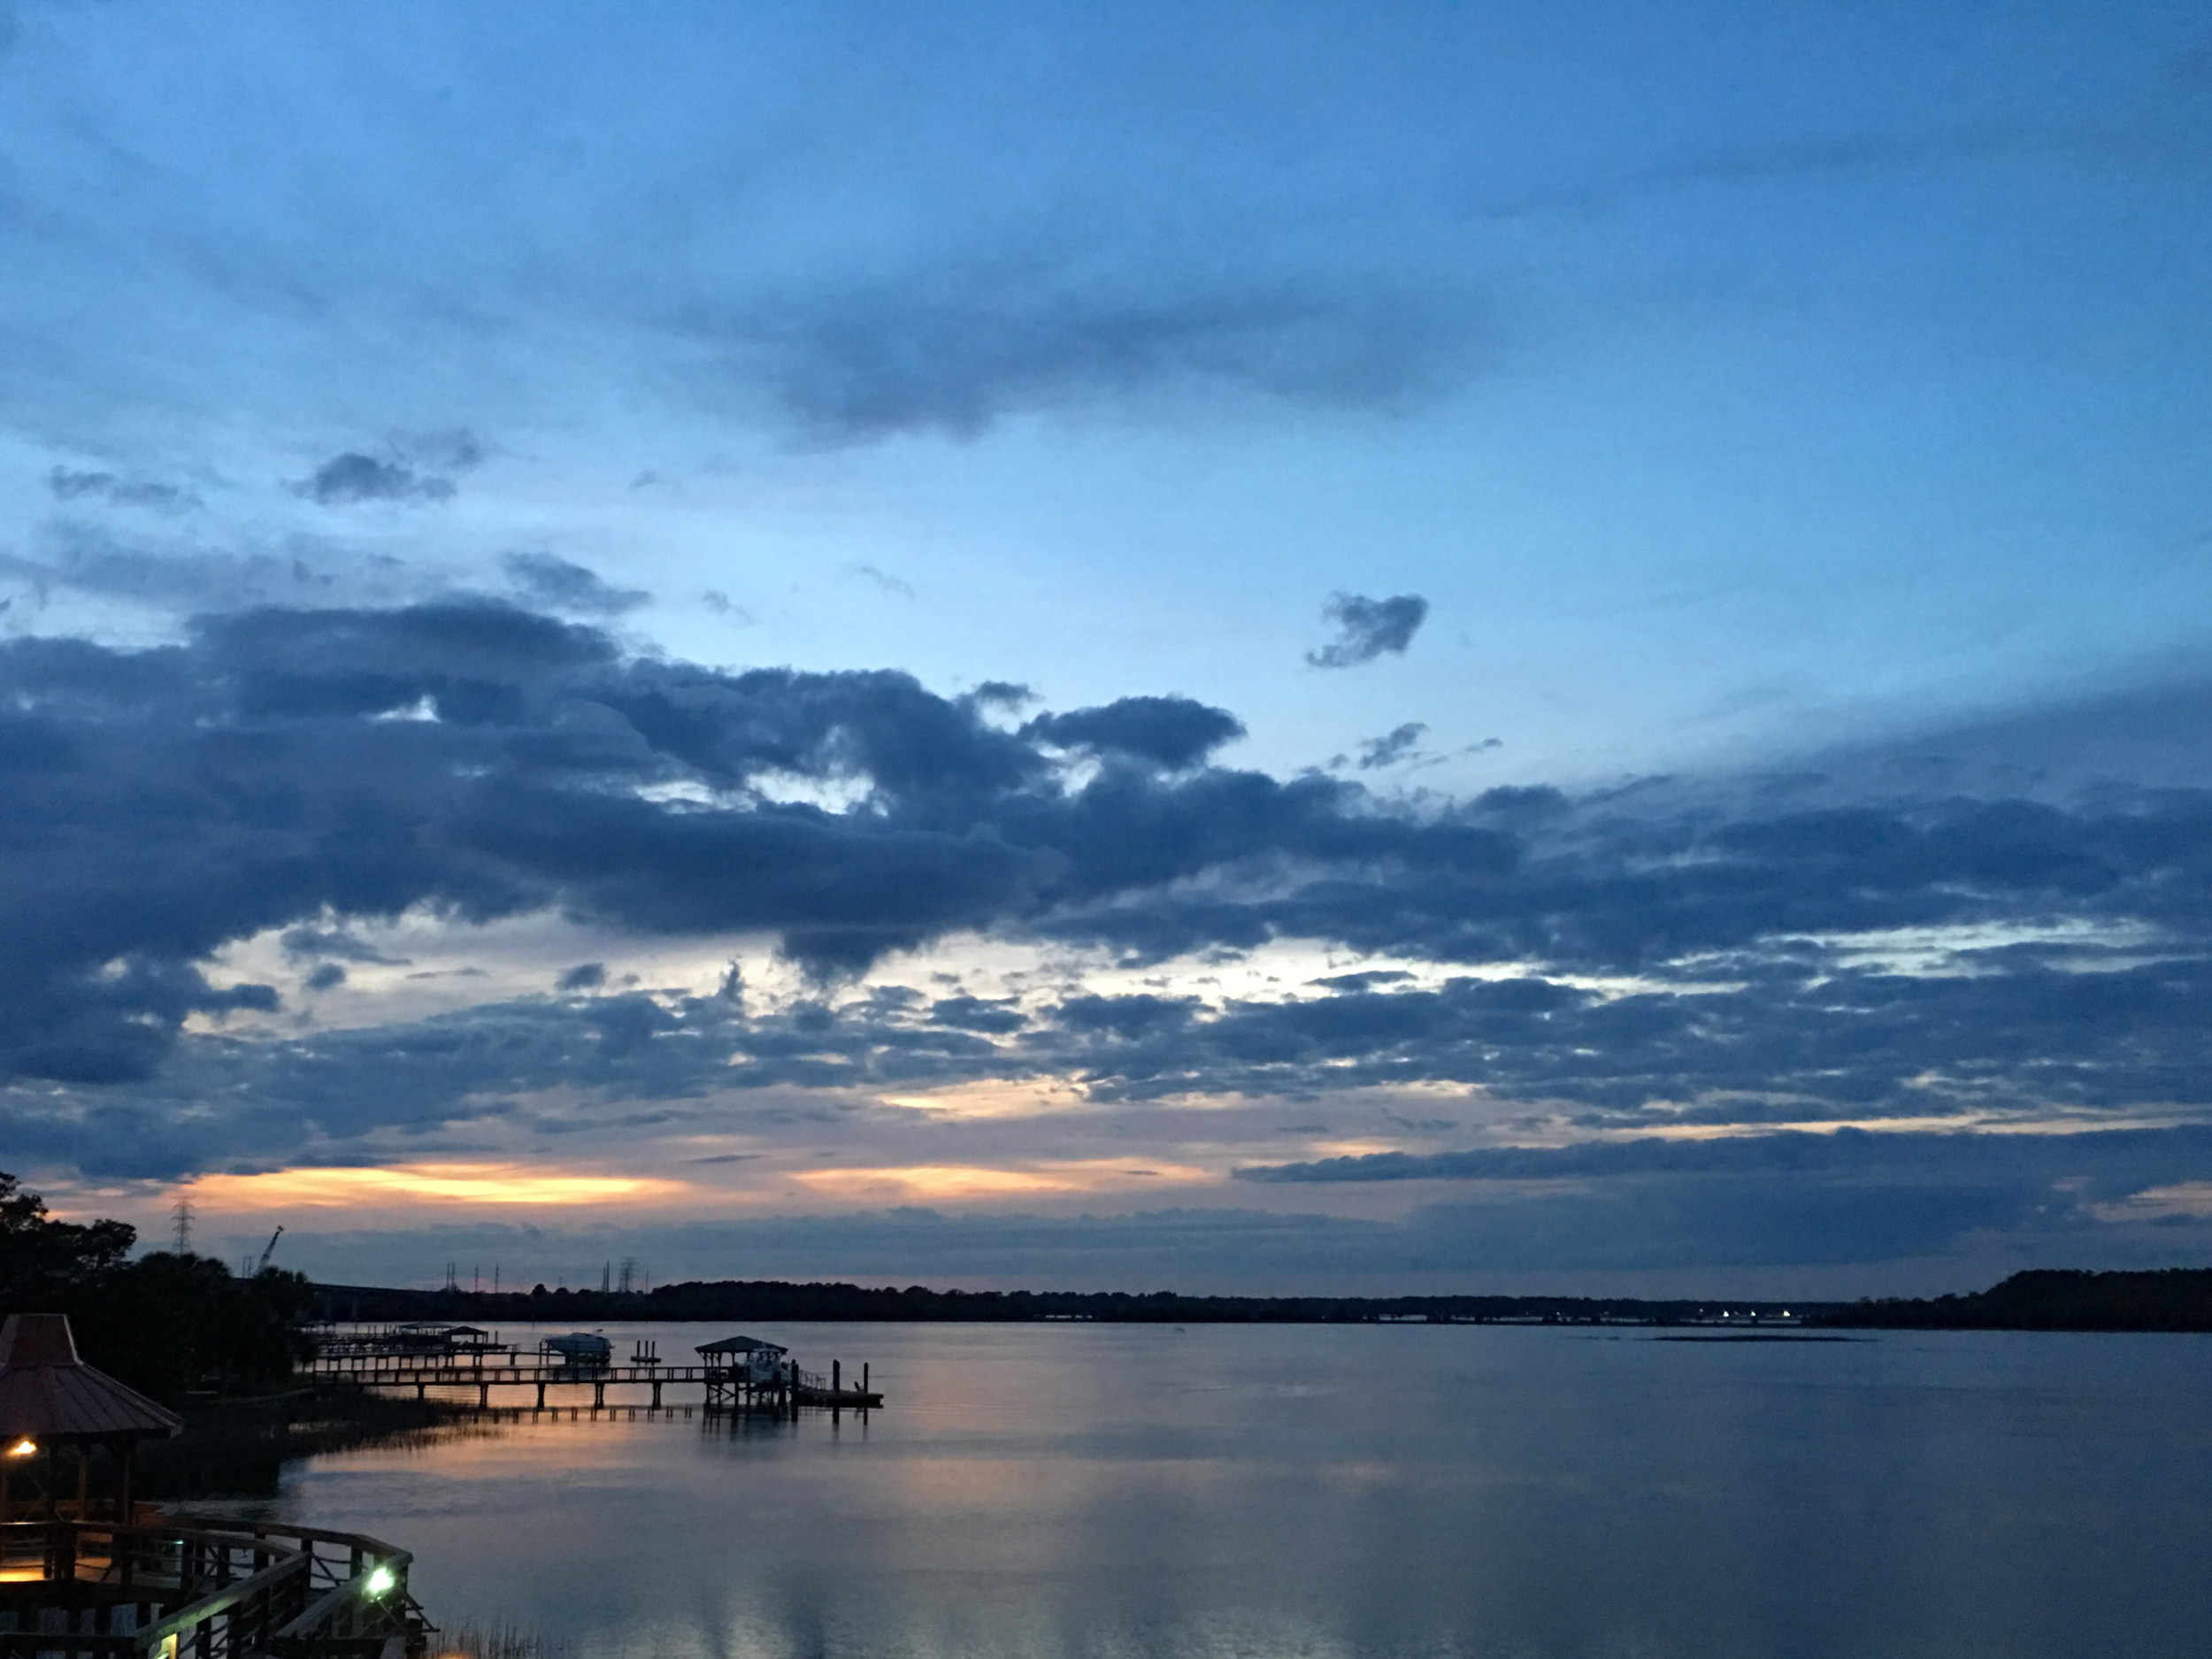 Restaurant view #2: From the Sunset Grille at Hilton Head Harbor RV Resort & Marina